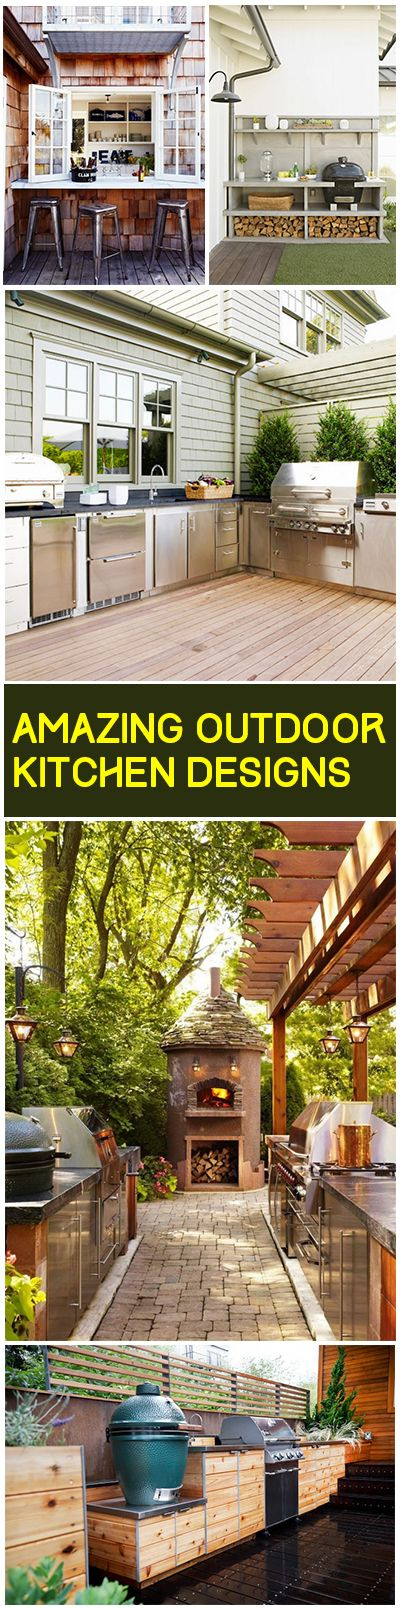 Summer is for cooking outdoors, imagine the amazing food you could cook in these outdoor kitchens?